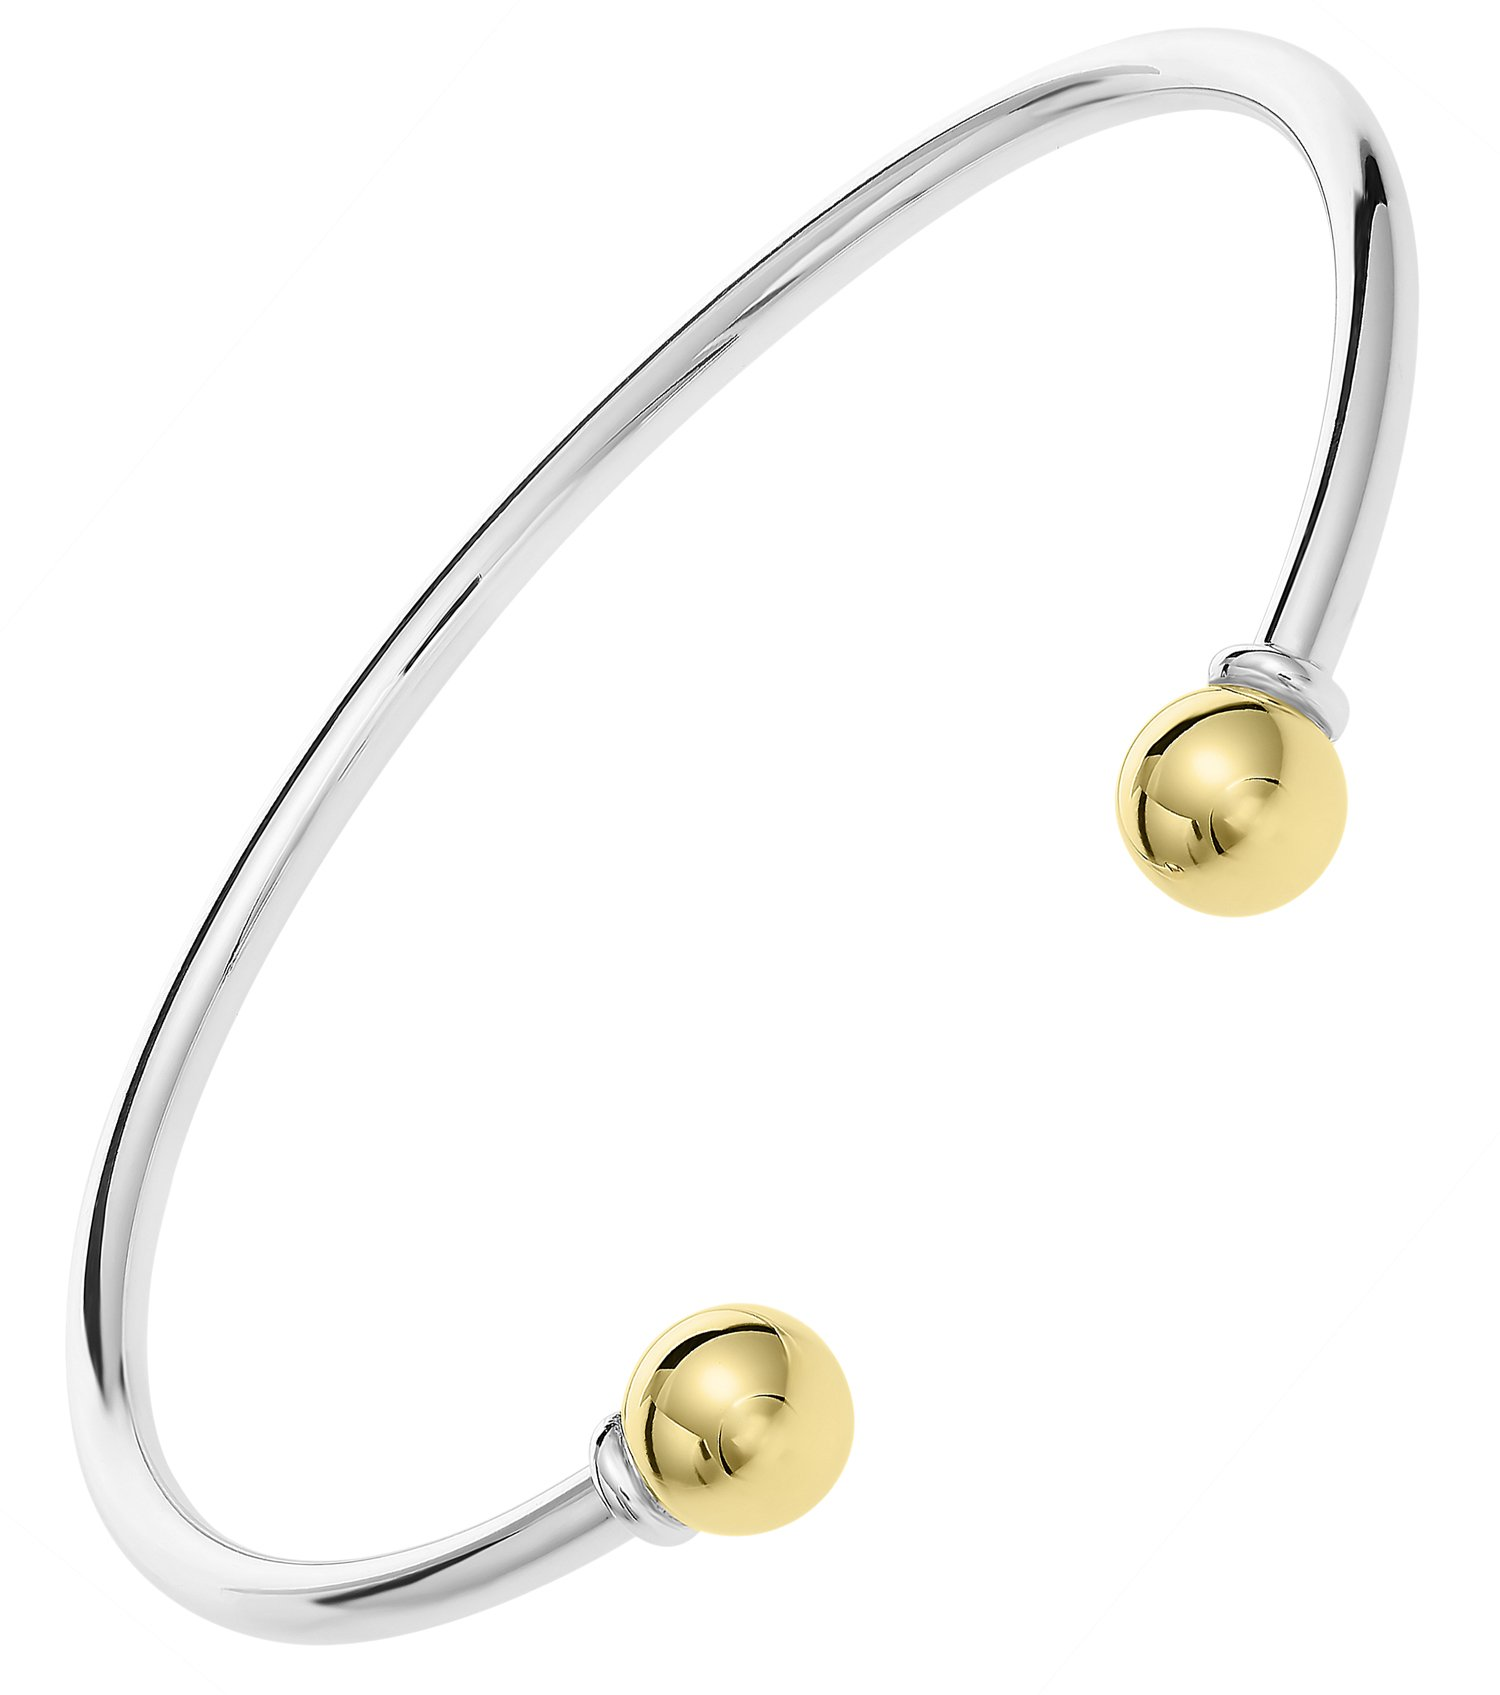 Unique royal jewelry Solid 925 Sterling Silver and 14k Gold 2-Ball Cuff Bracelet (Size 7) by Unique Royal Jewelry (Image #1)